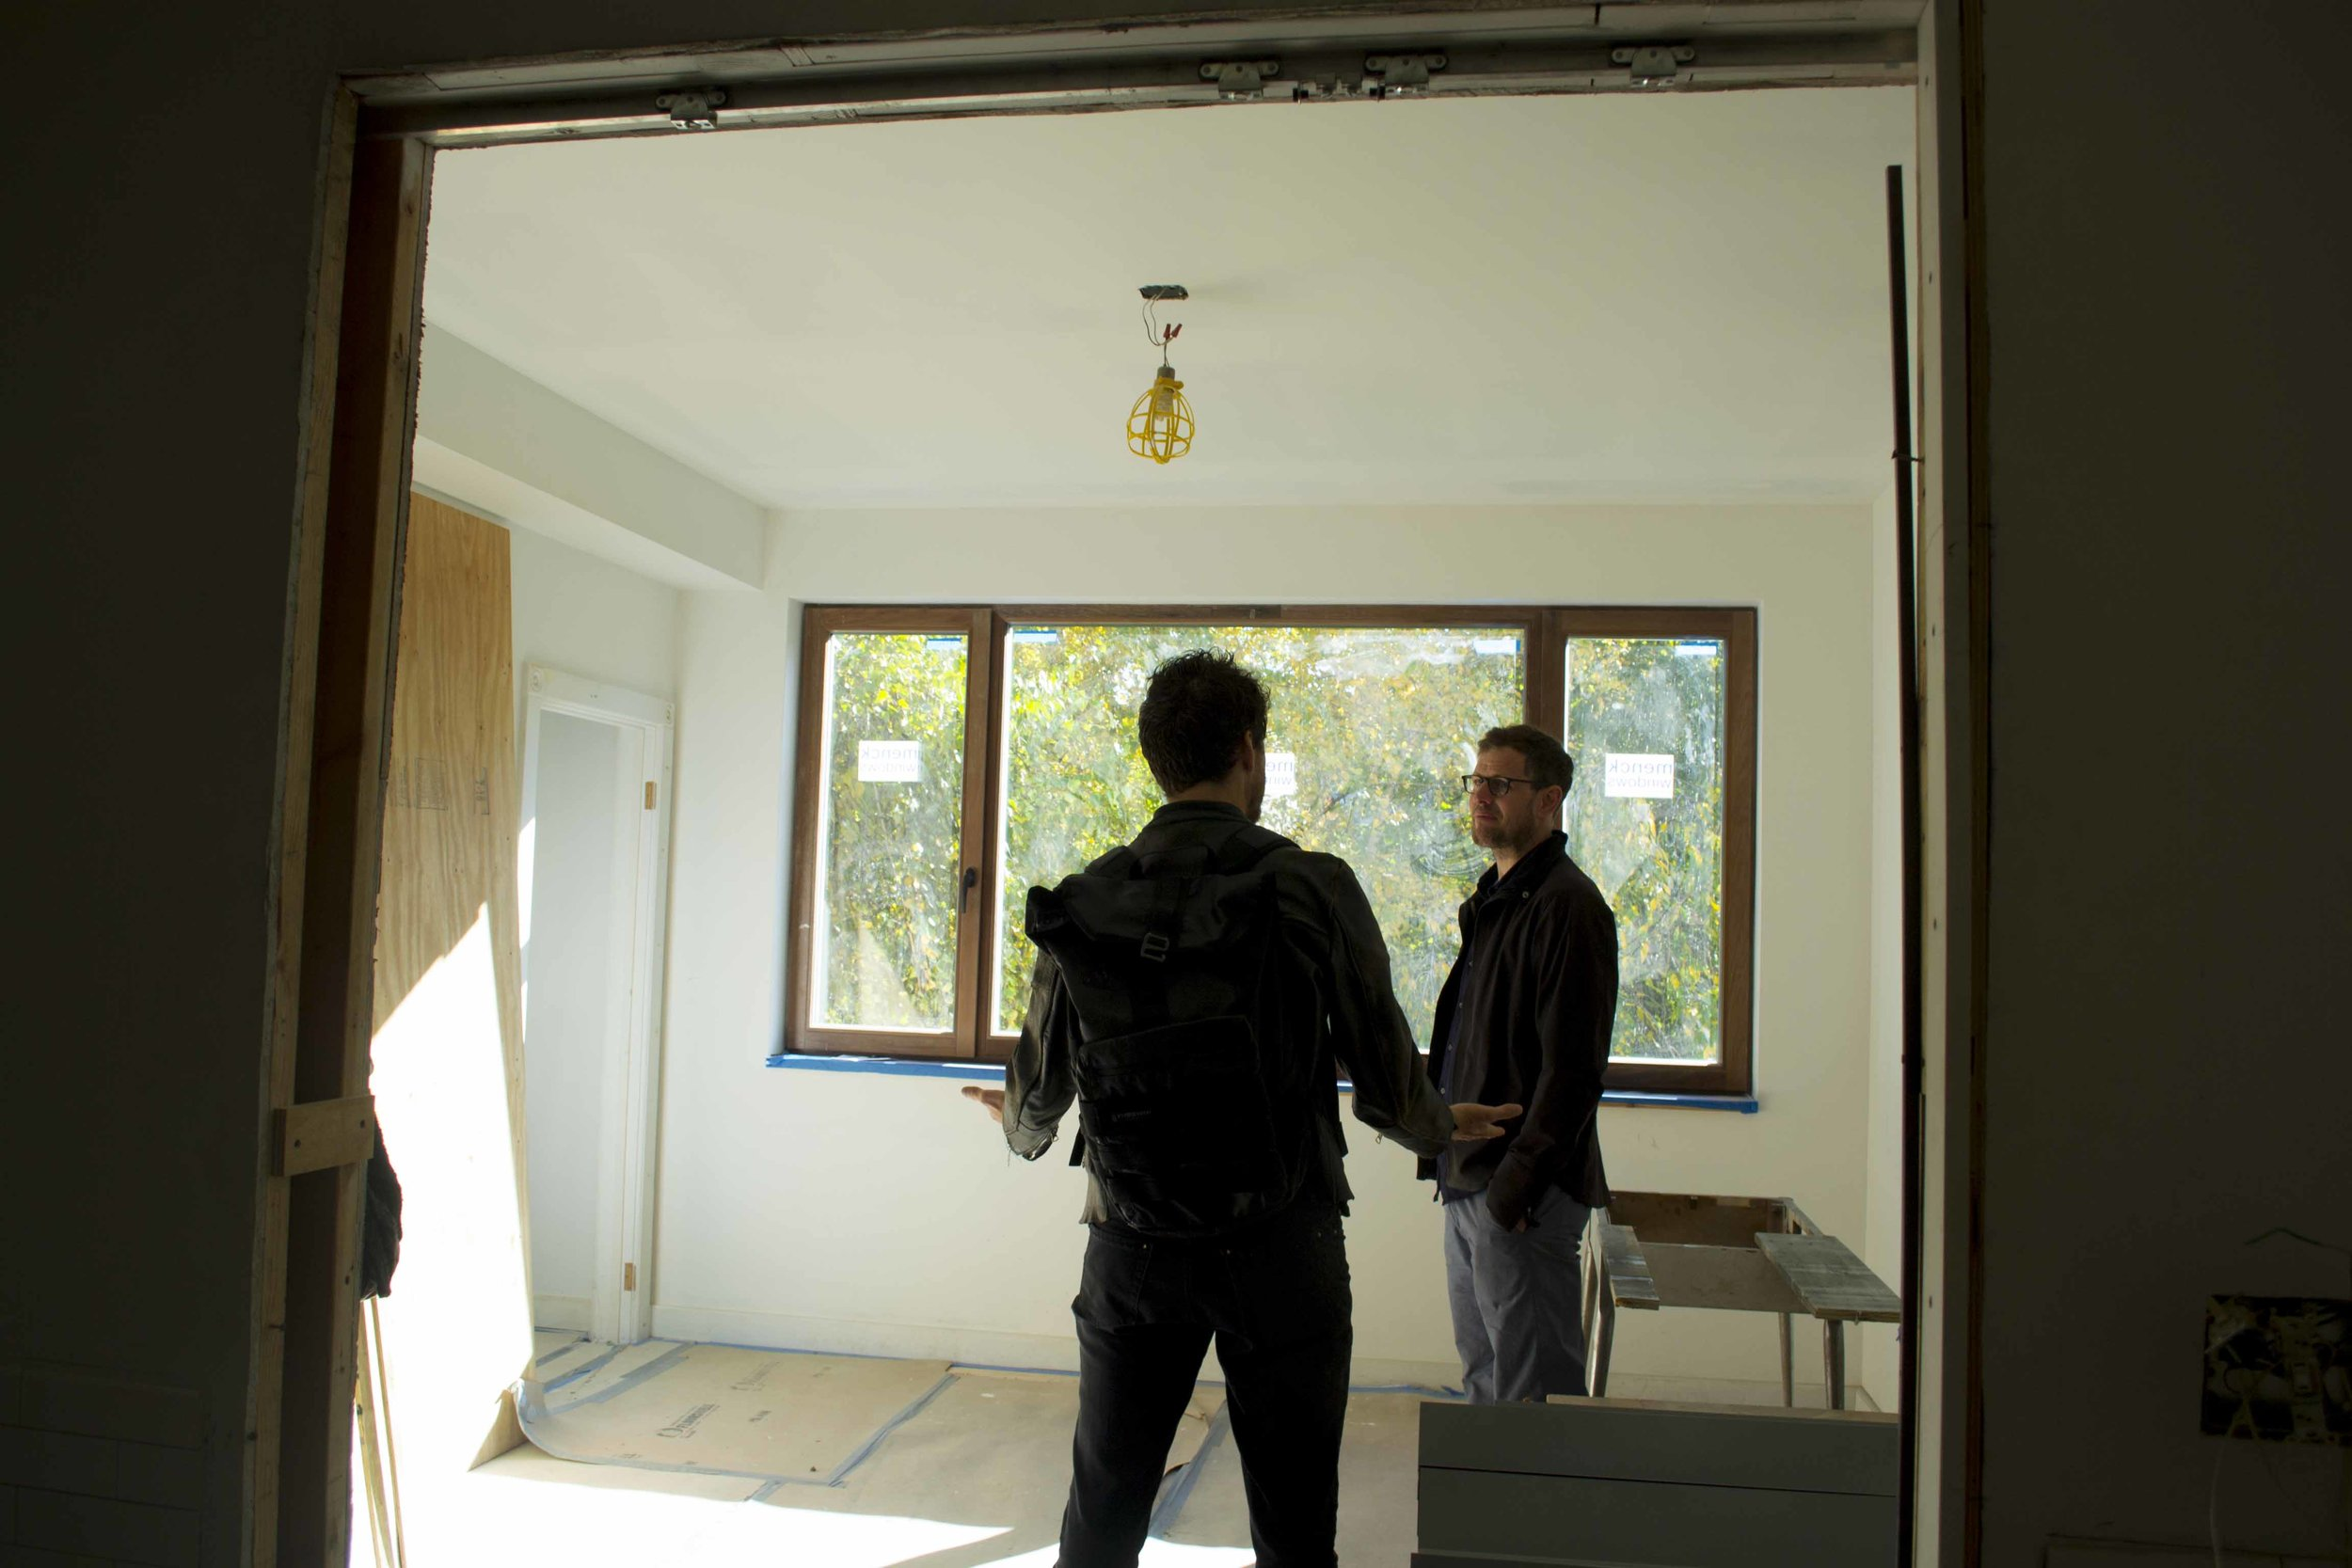 20161111__NY PASSIVE HOUSE DAYS_OPEN HOUSE_PAUL CASTRUCCI ARCHITECT__0009_lowres.jpg